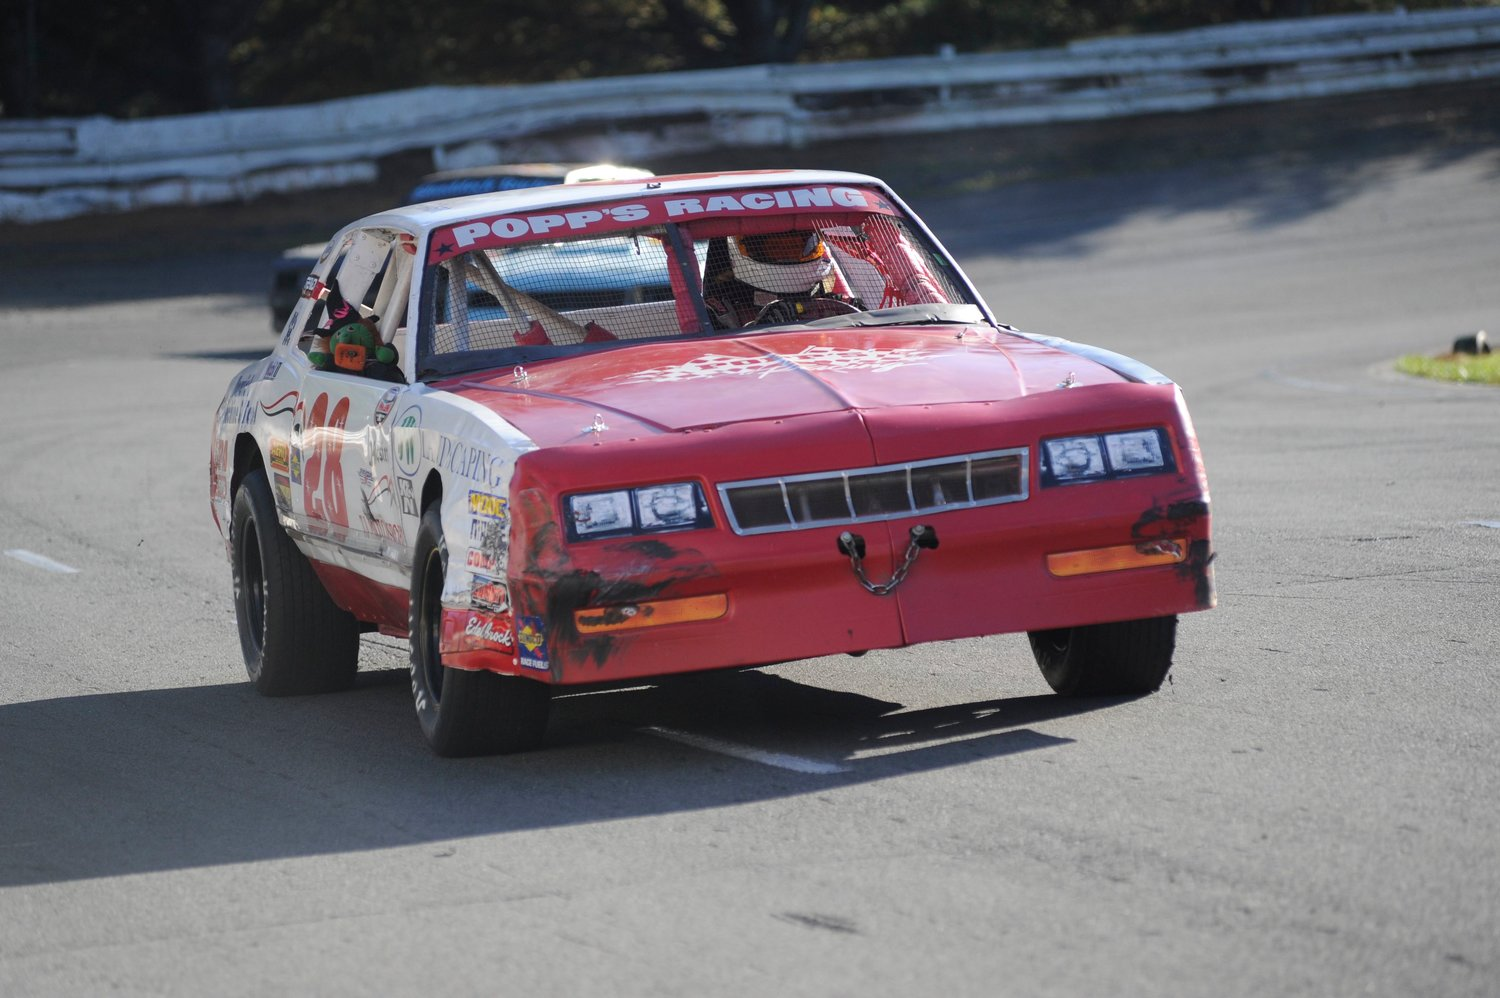 Woman at speed. Patty Pop Falkena of Waldon, NY is one of the few women racers at BMS. She competes in street-stock car #28 and placed seventh in the feature race at 9:39.557, just seconds off Kyle Welsch's winning time of 9:35.716.